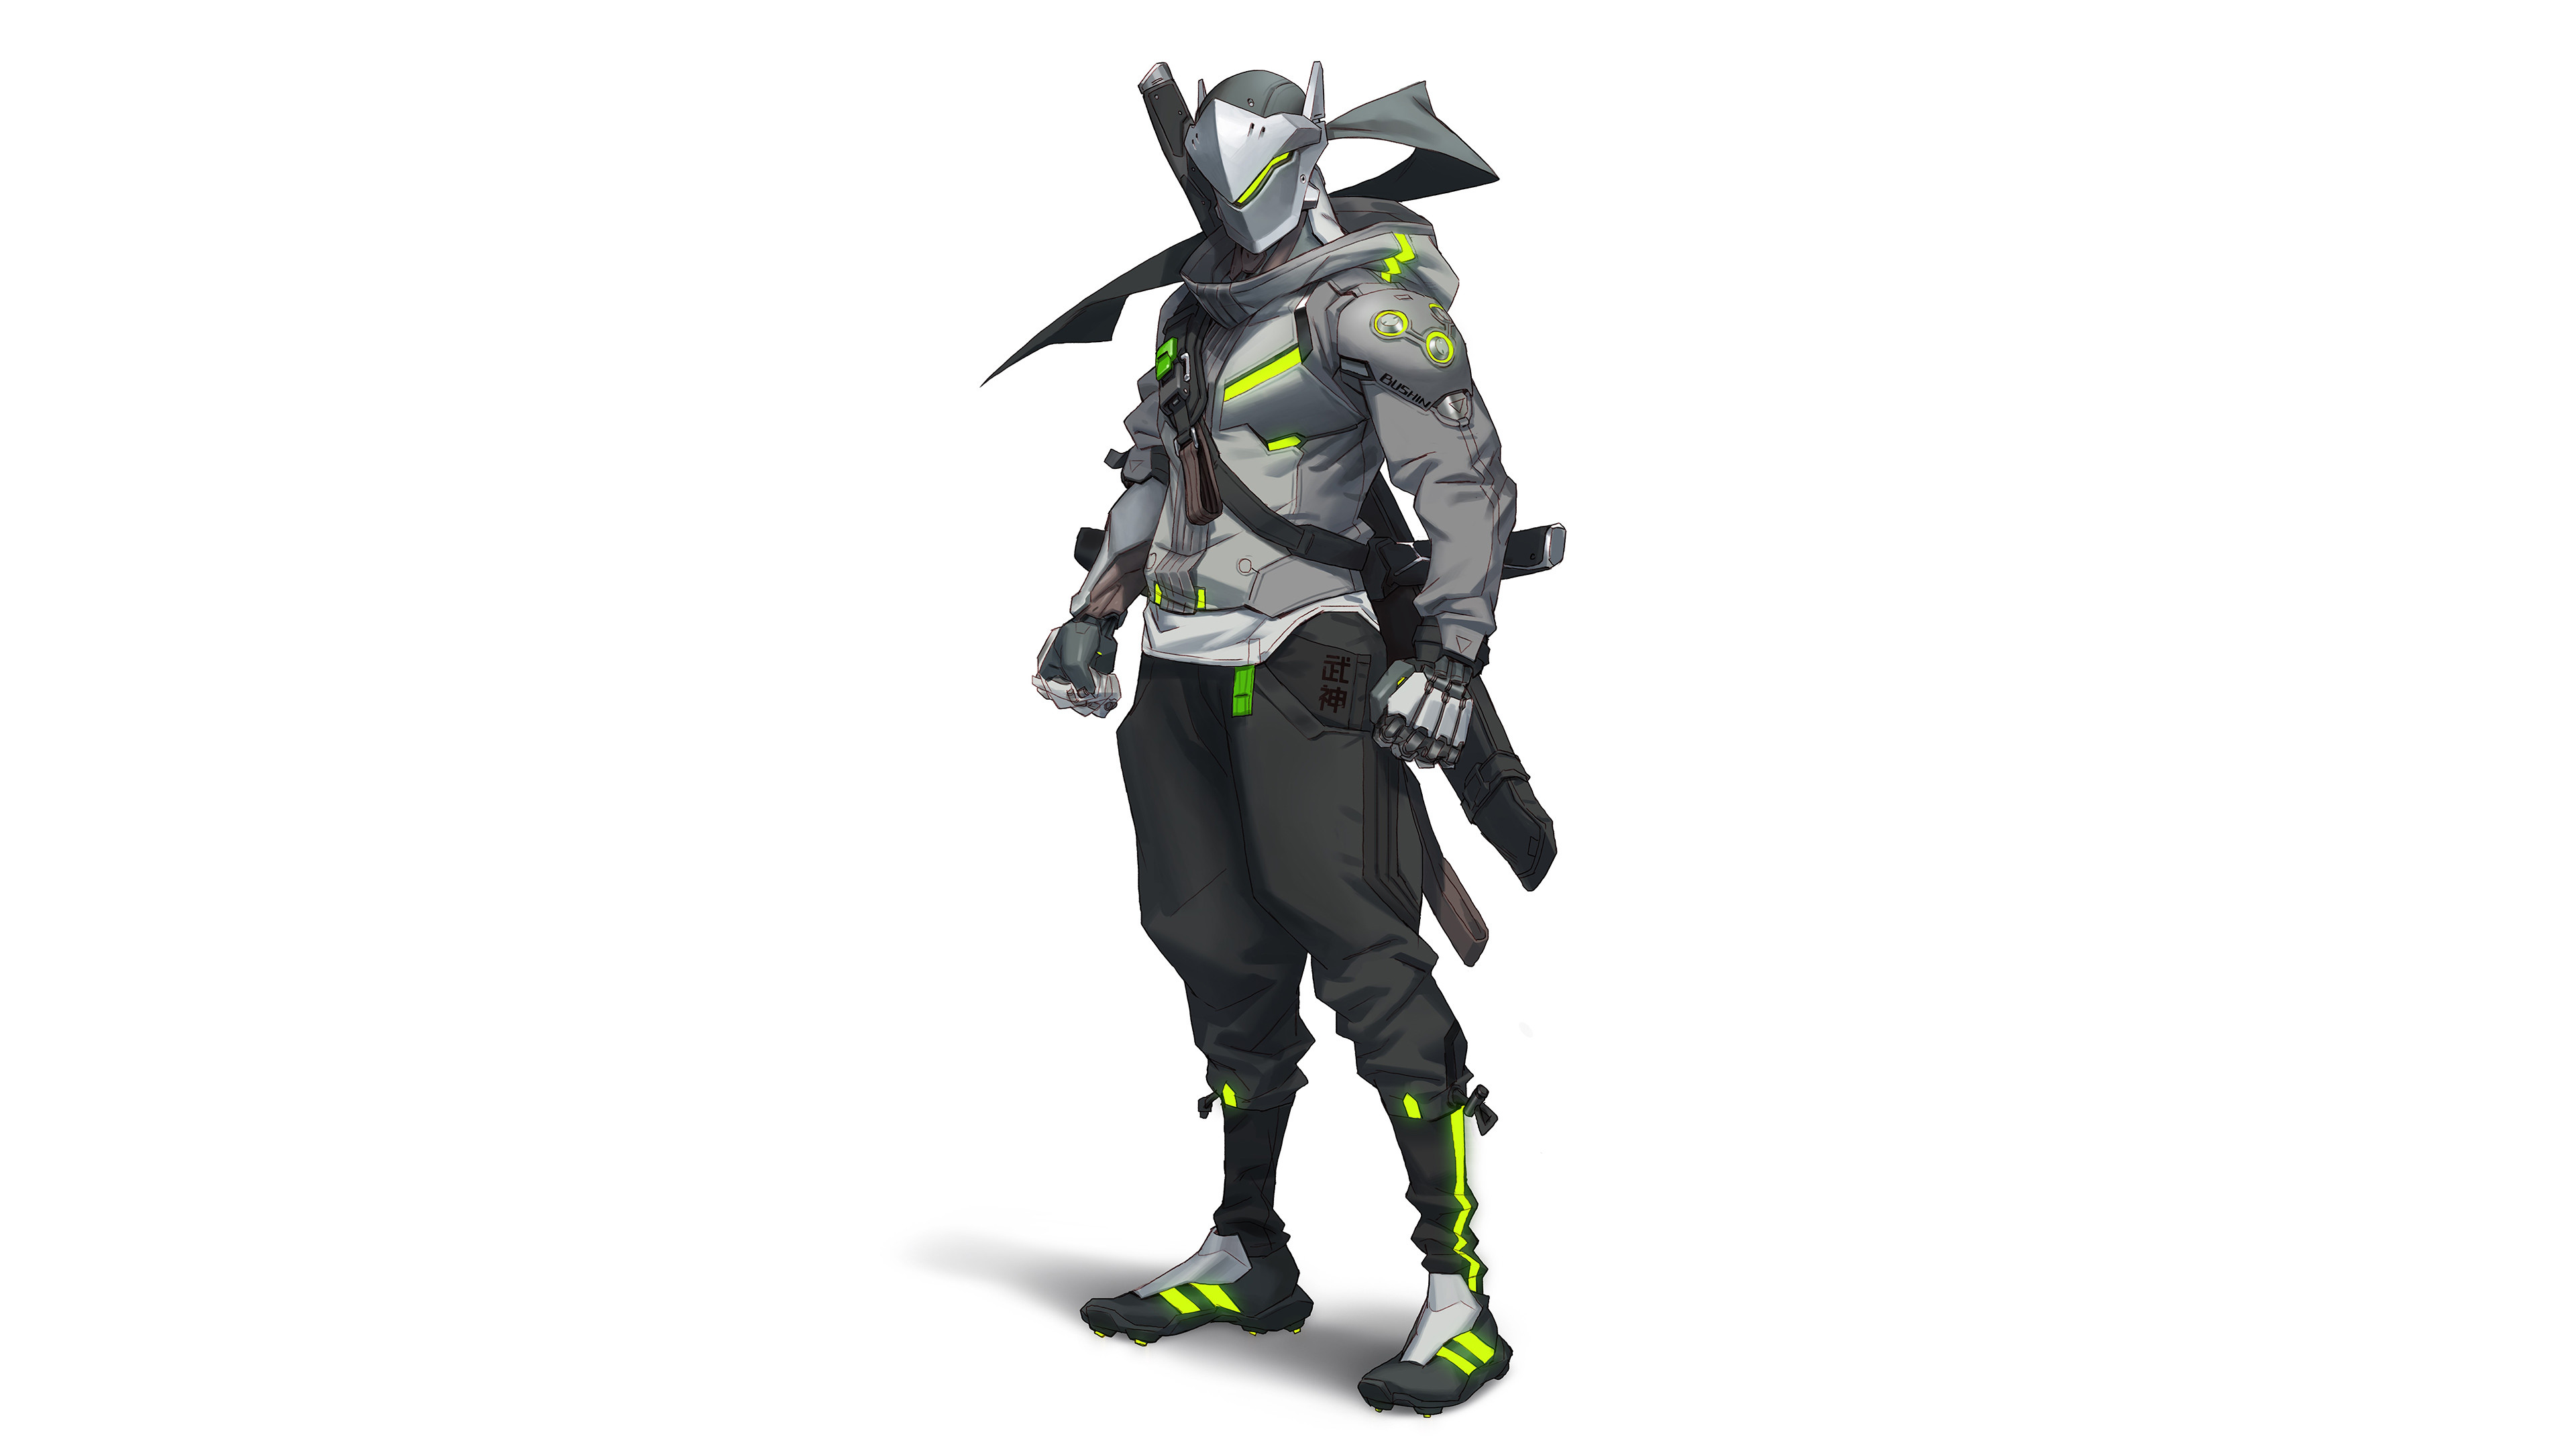 genji overwatch 2 sf 3840x2160 1 - Overwatch 2 :Genji - Overwatch genji wallpaper, Overwatch 2:Genji 4k wallpaper, Genji 4k wallpaper